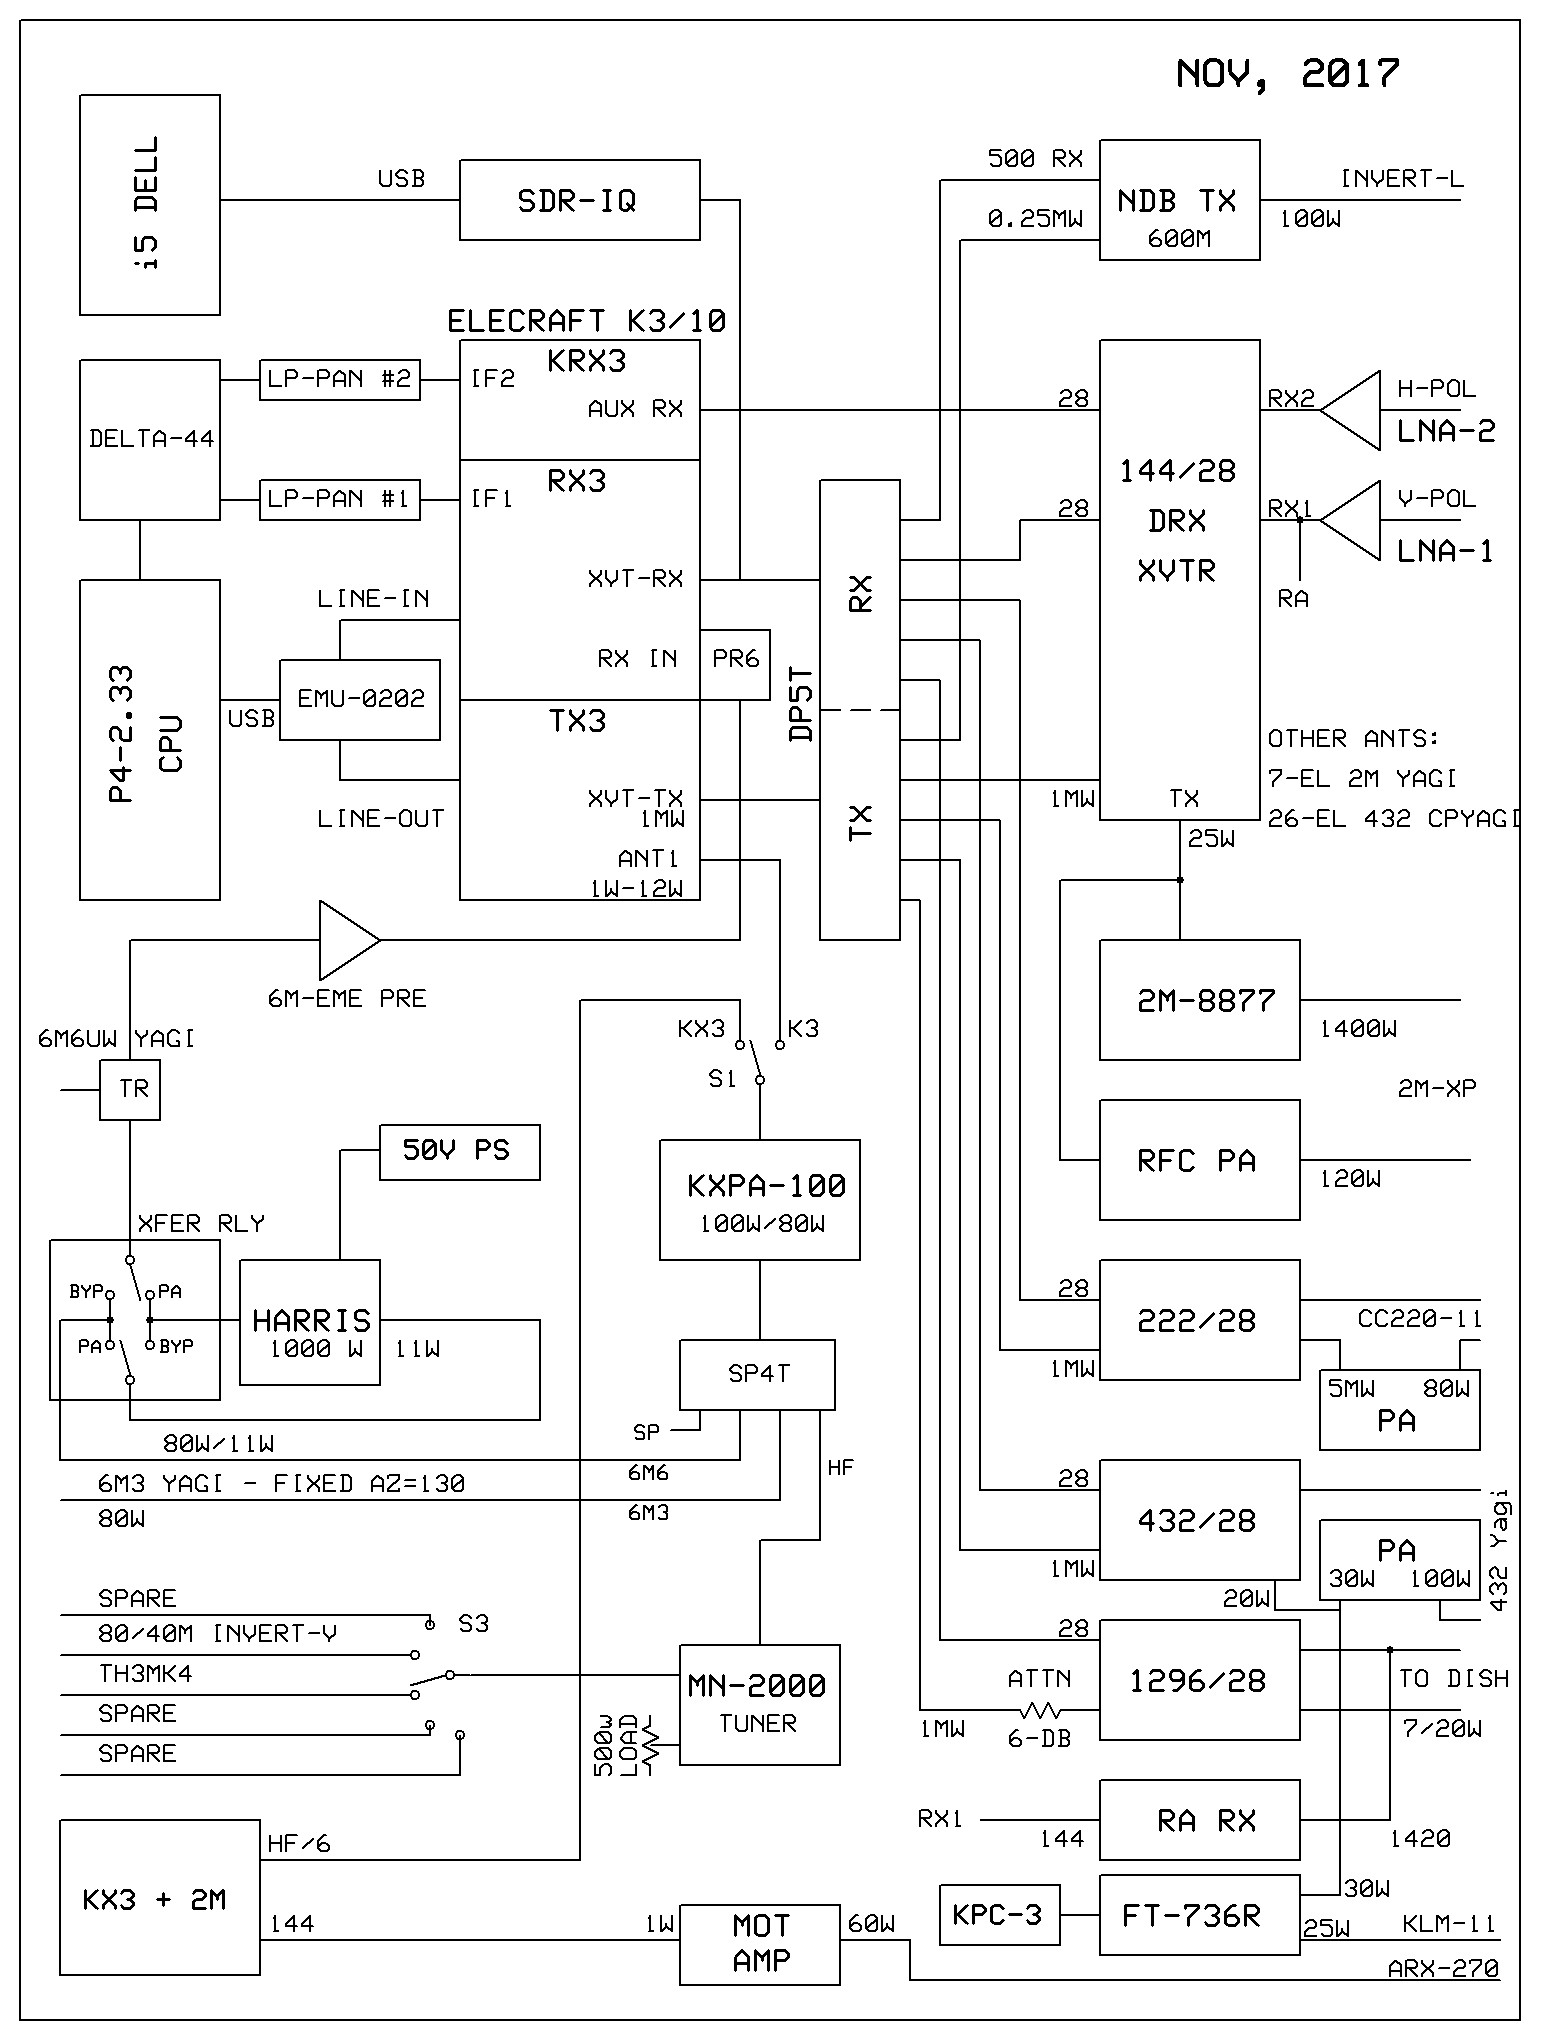 2017_Station nec sl1100 wiring diagram cable nec business telephone systems nec sl1100 wiring diagram at fashall.co